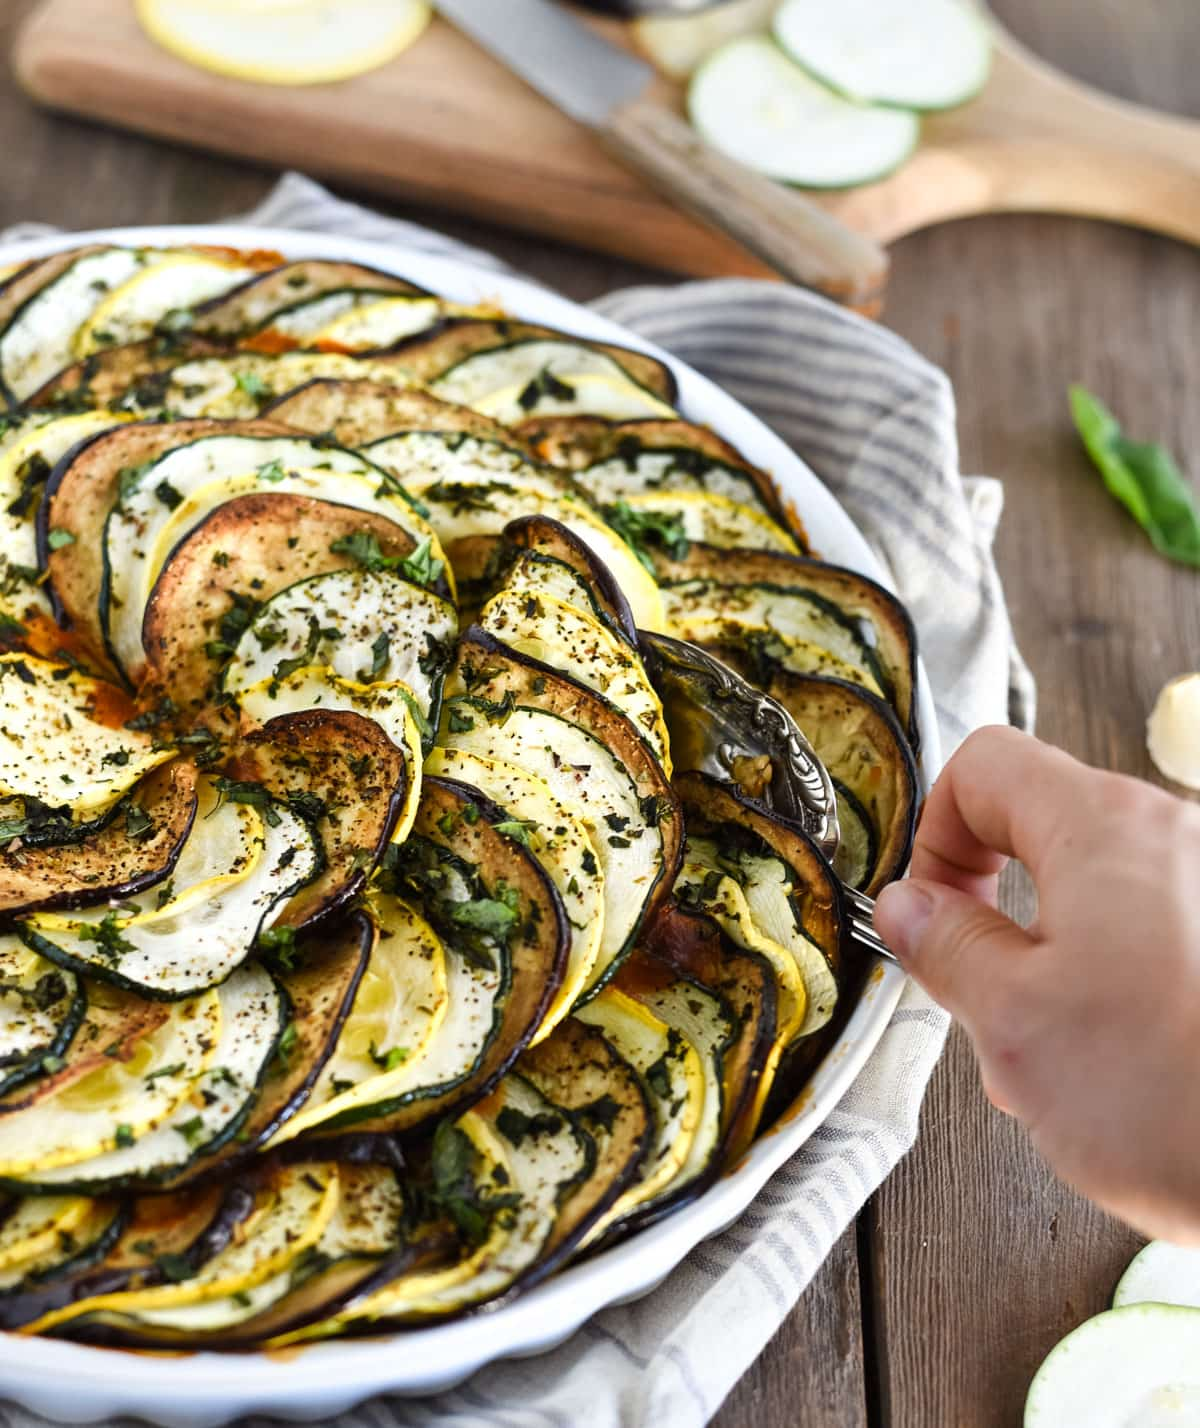 Layered oven ratatouille